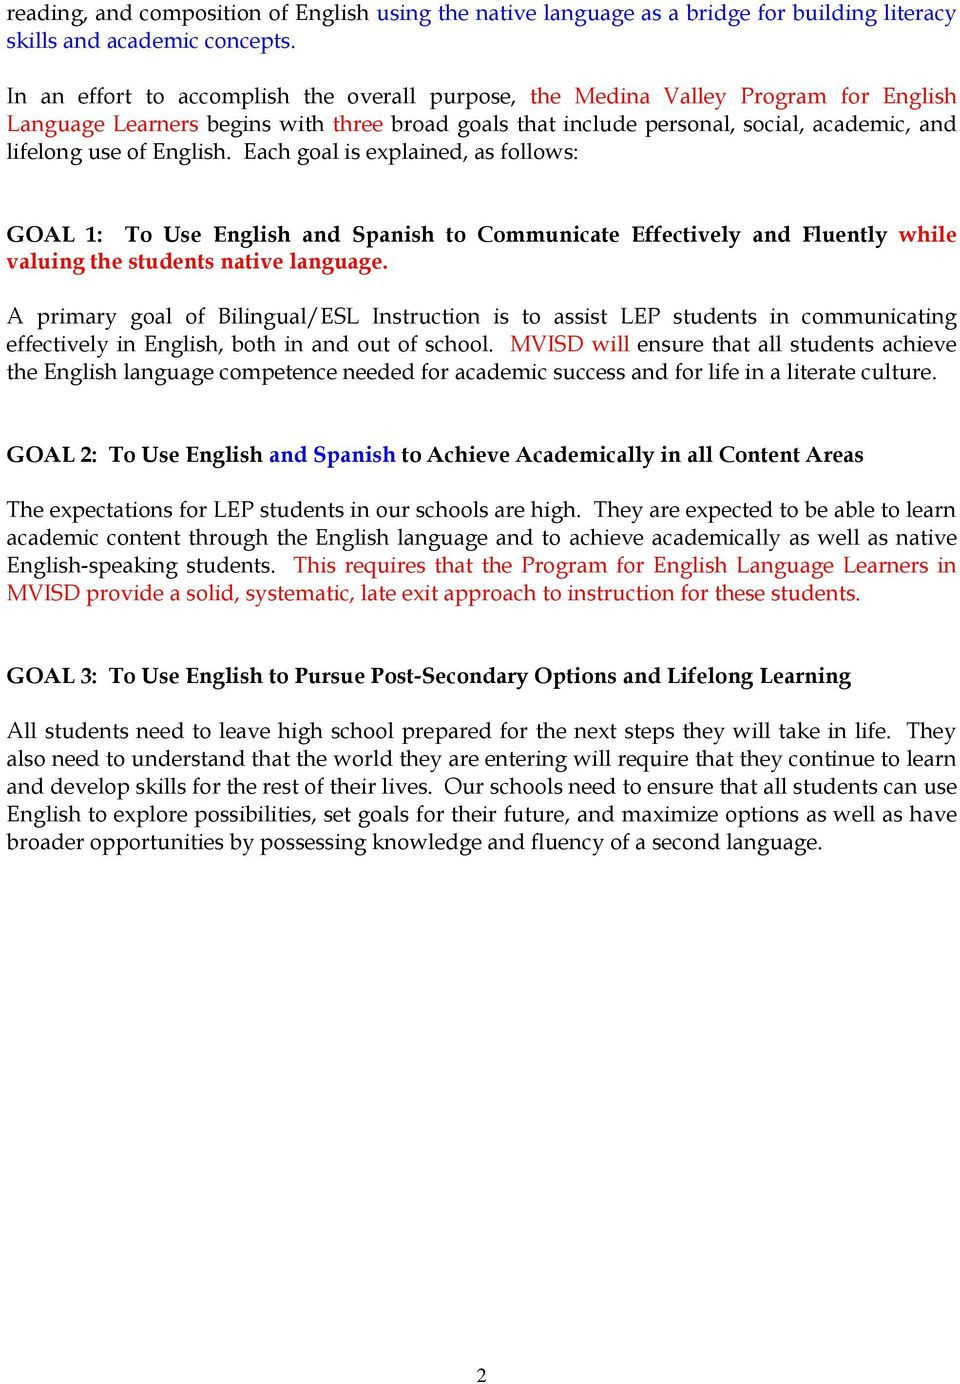 English. Each goal is explained, as follows: GOAL 1: To Use English and Spanish to Communicate Effectively and Fluently while valuing the students native language.